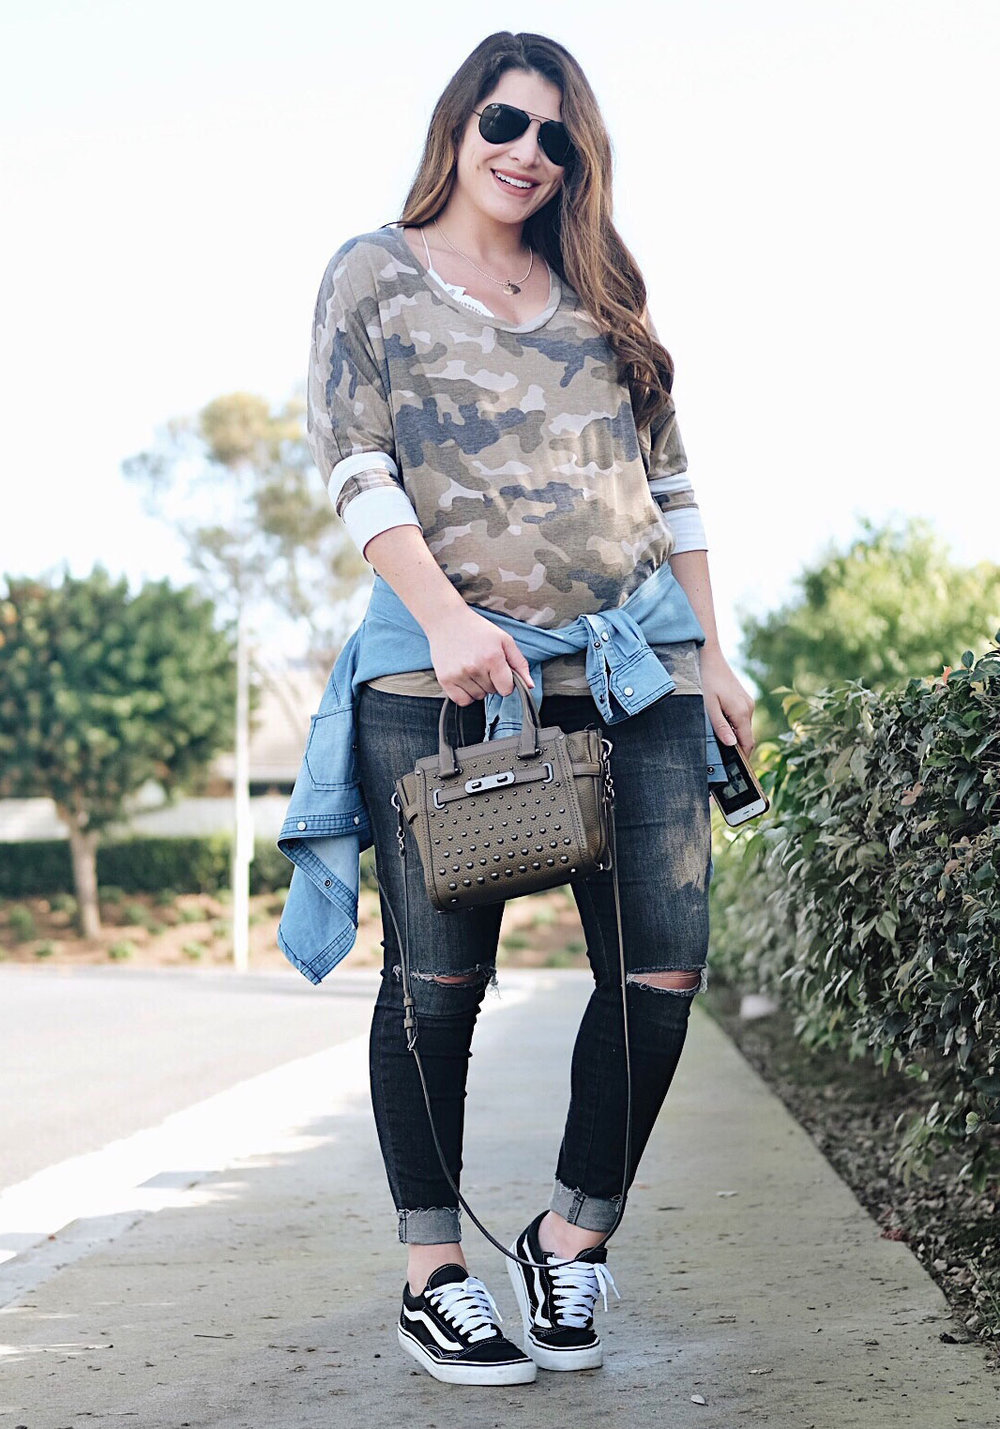 Second trimester maternity outfit. Gray distressed maternity jeans, camo baseball tee, free people